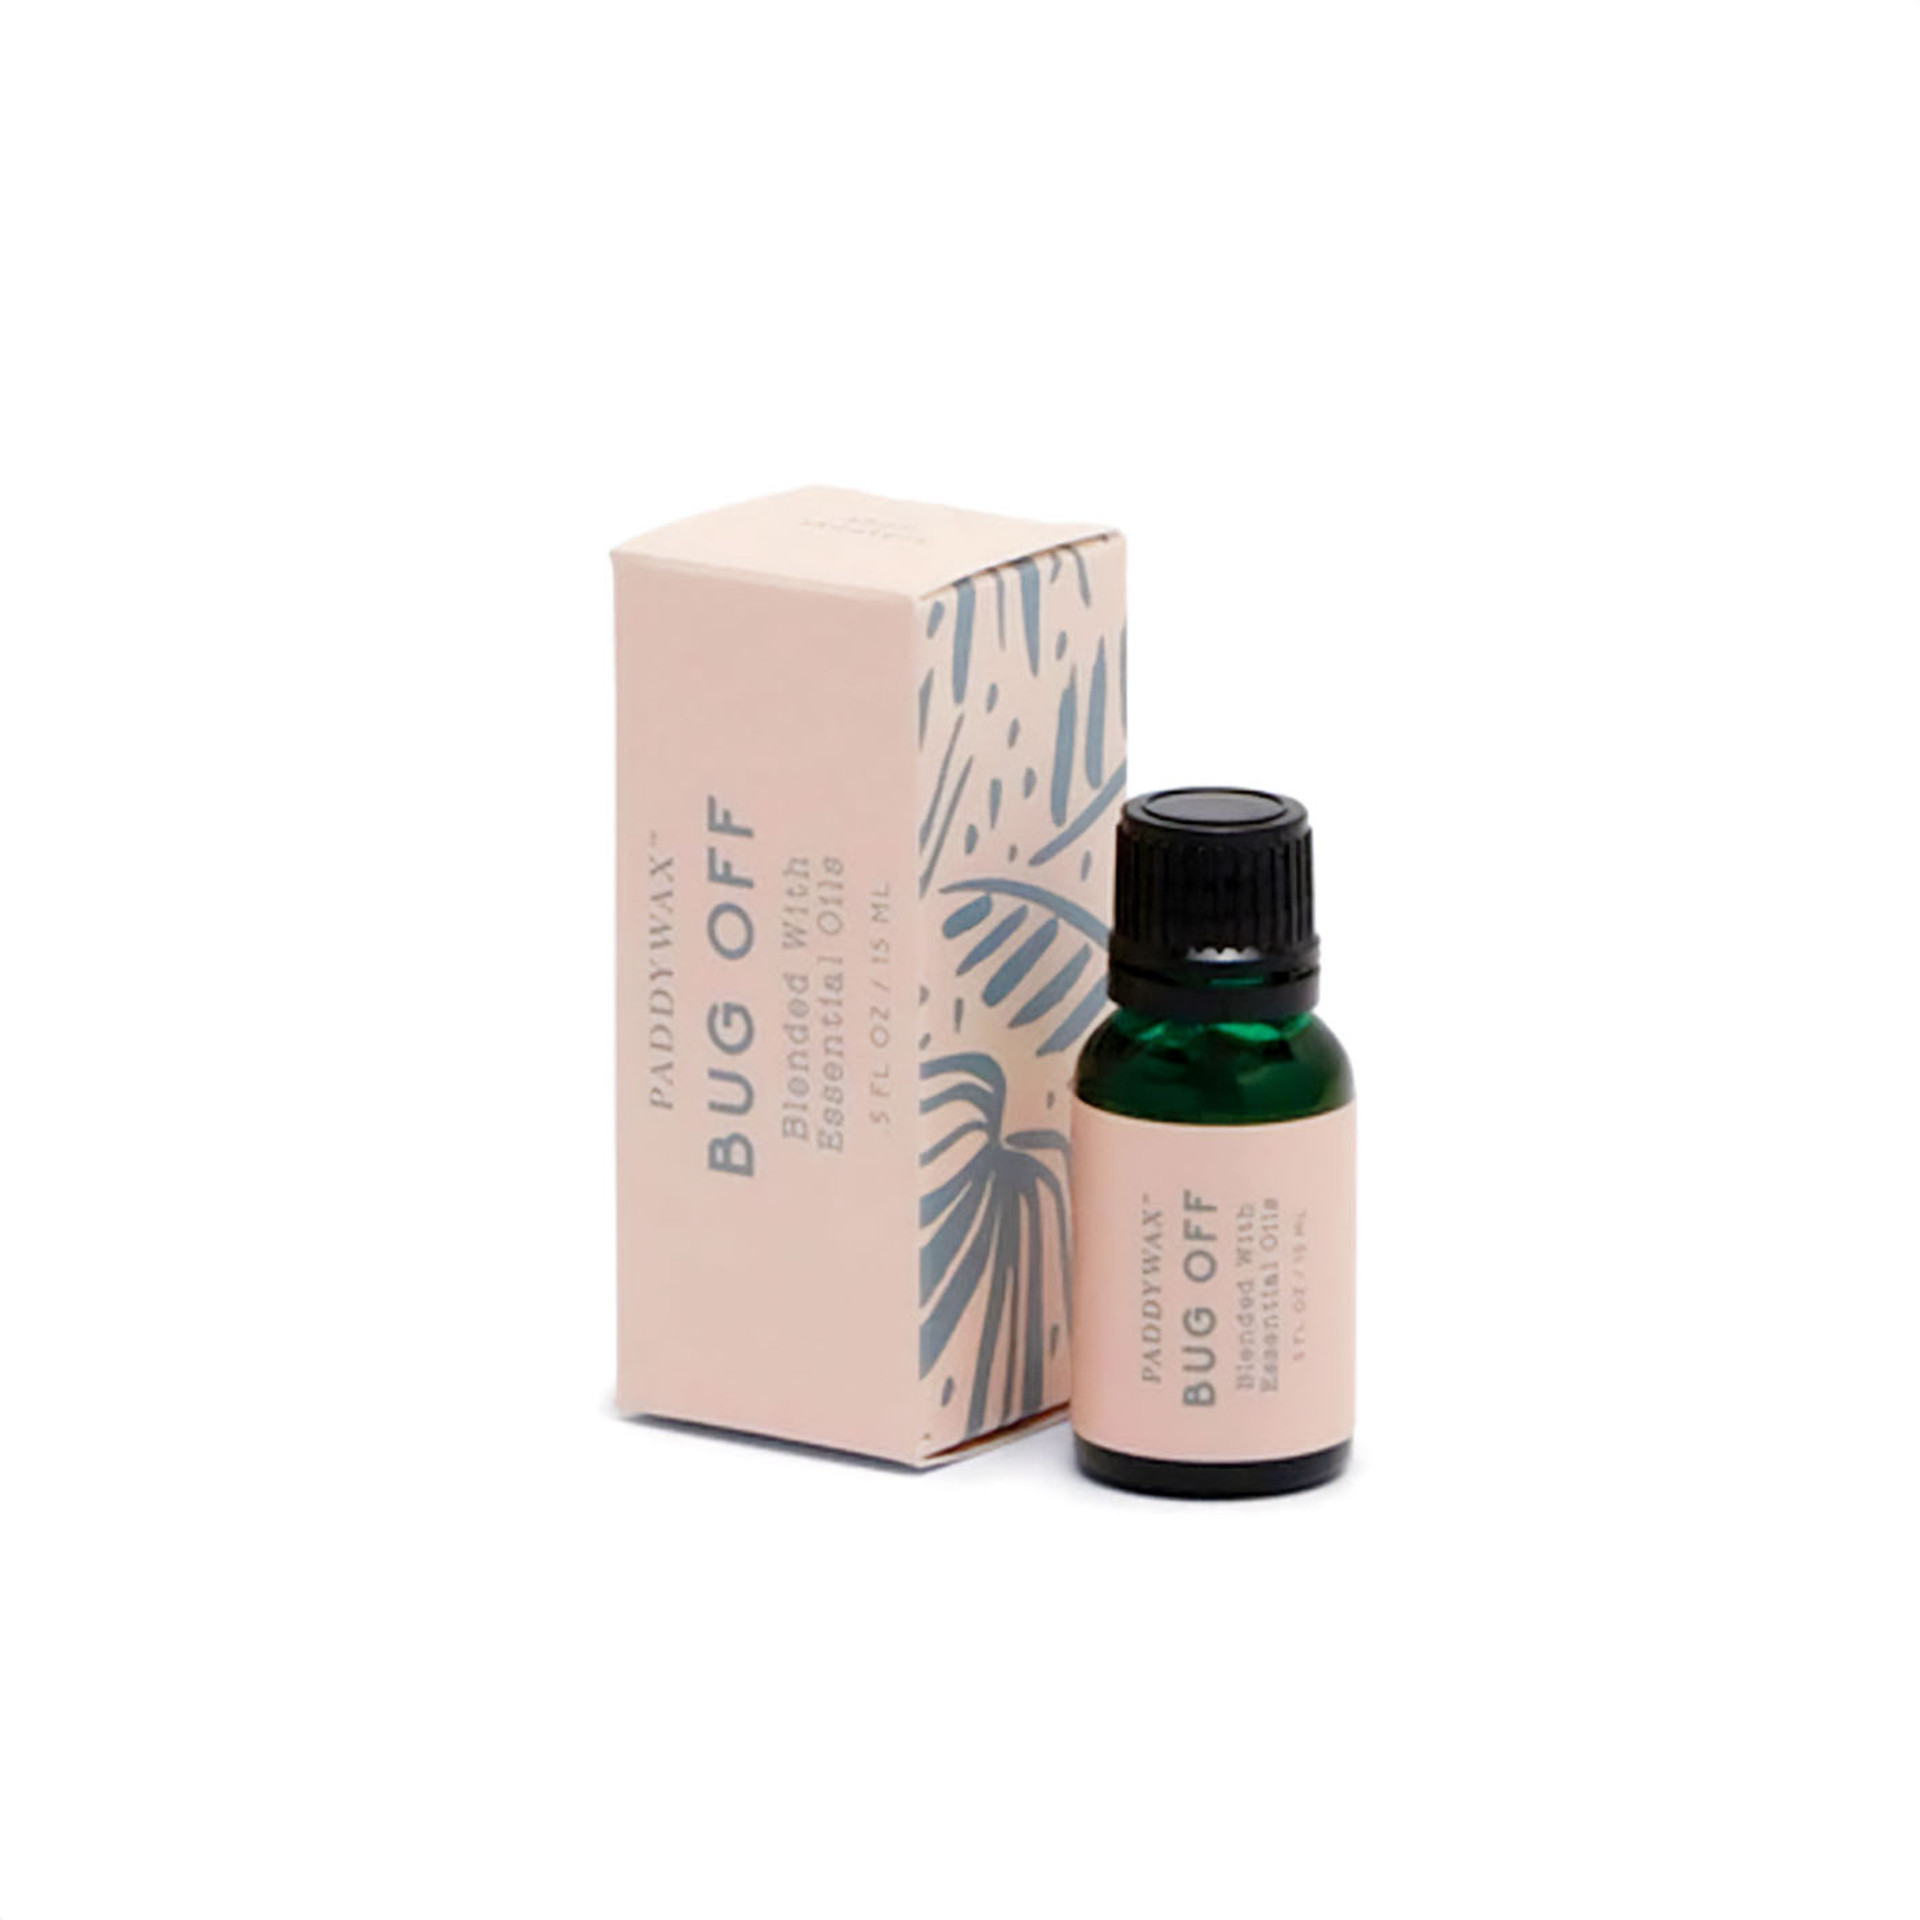 Paddywax Bug-Off Repellant Blend Essential Oil